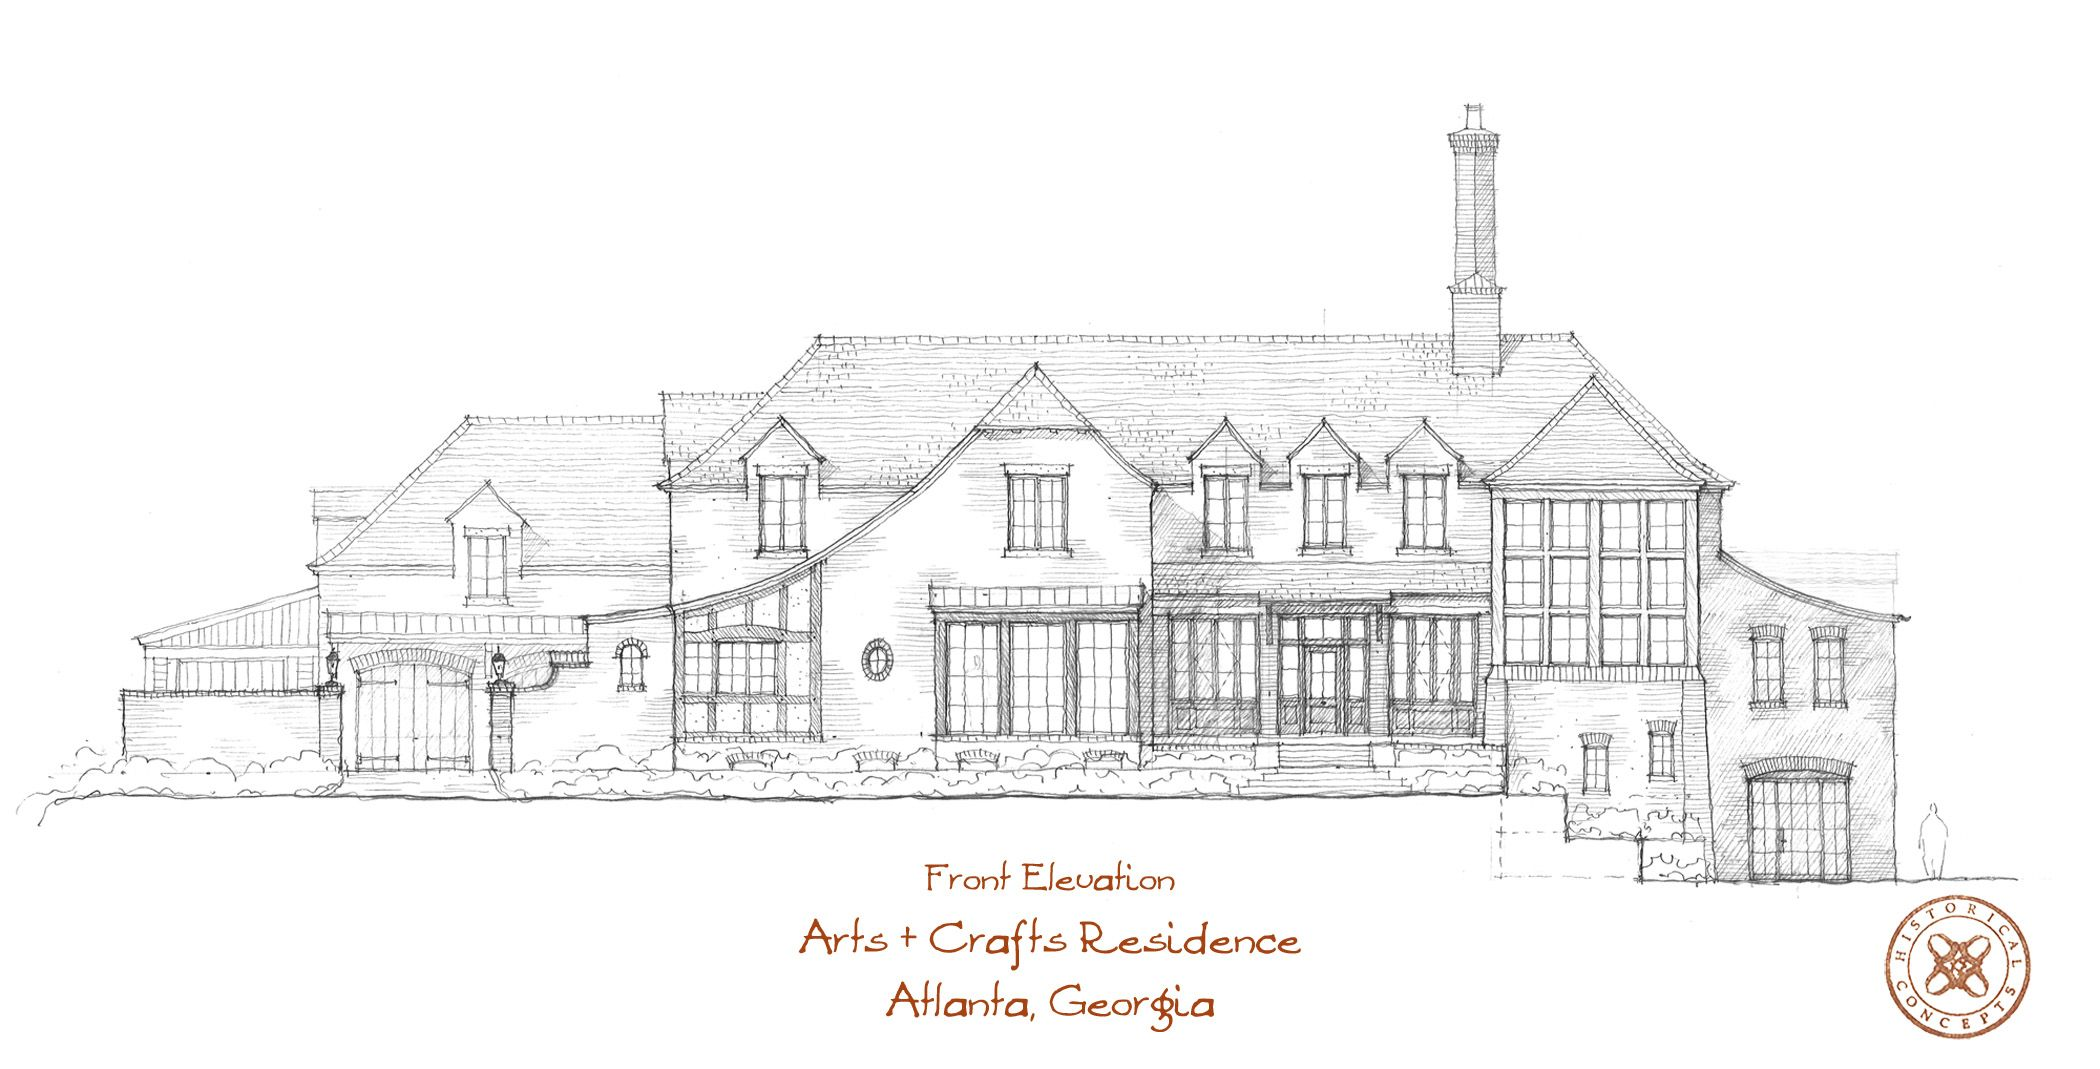 Front Elevation Sketch : A hand sketch of the front elevation an arts crafts